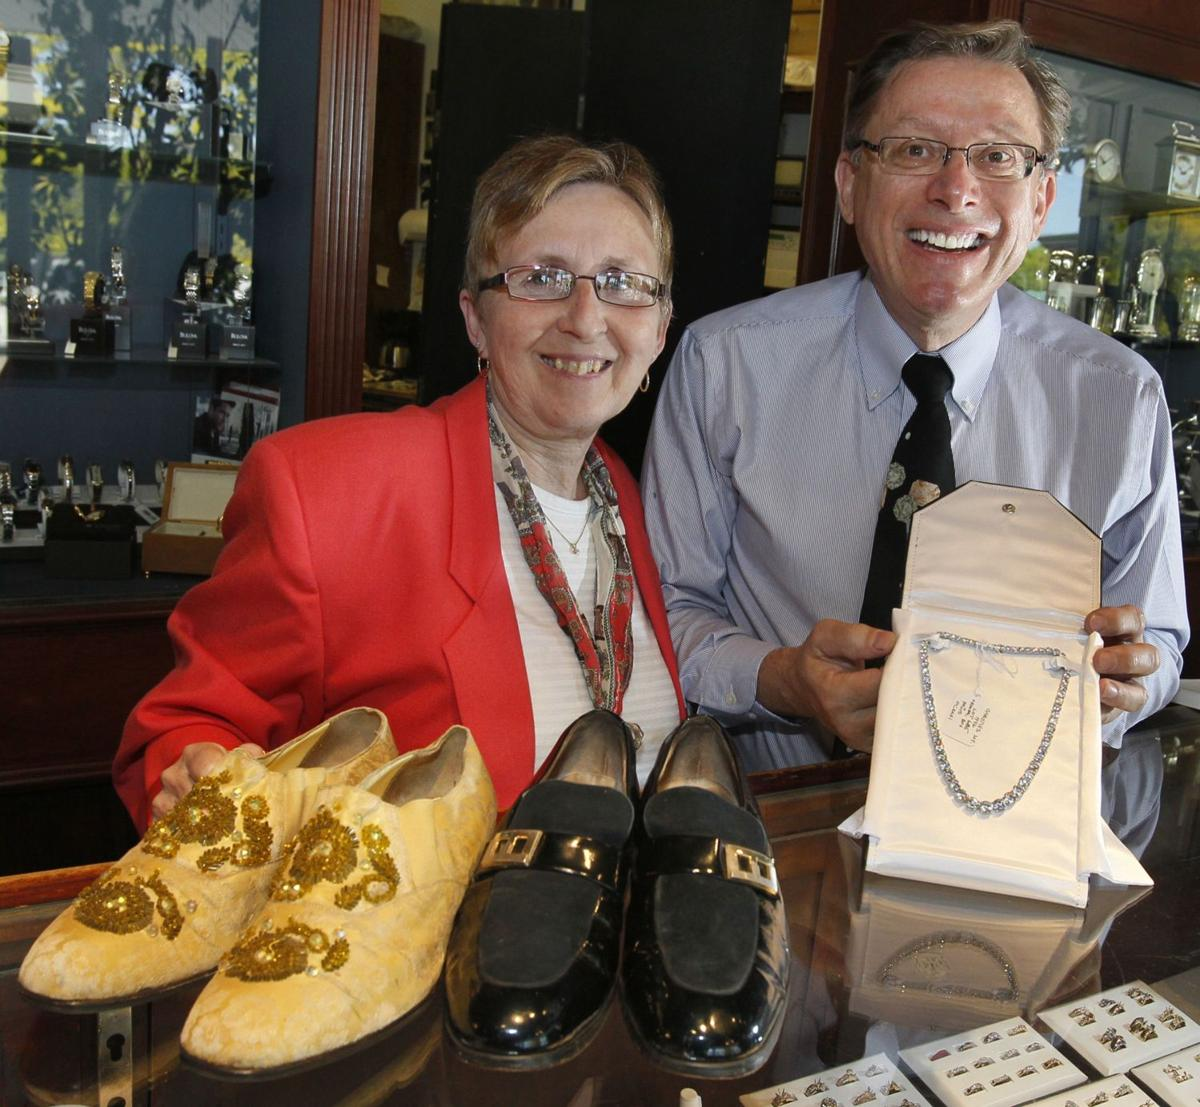 Jeweler collects movie star fashions as hobby